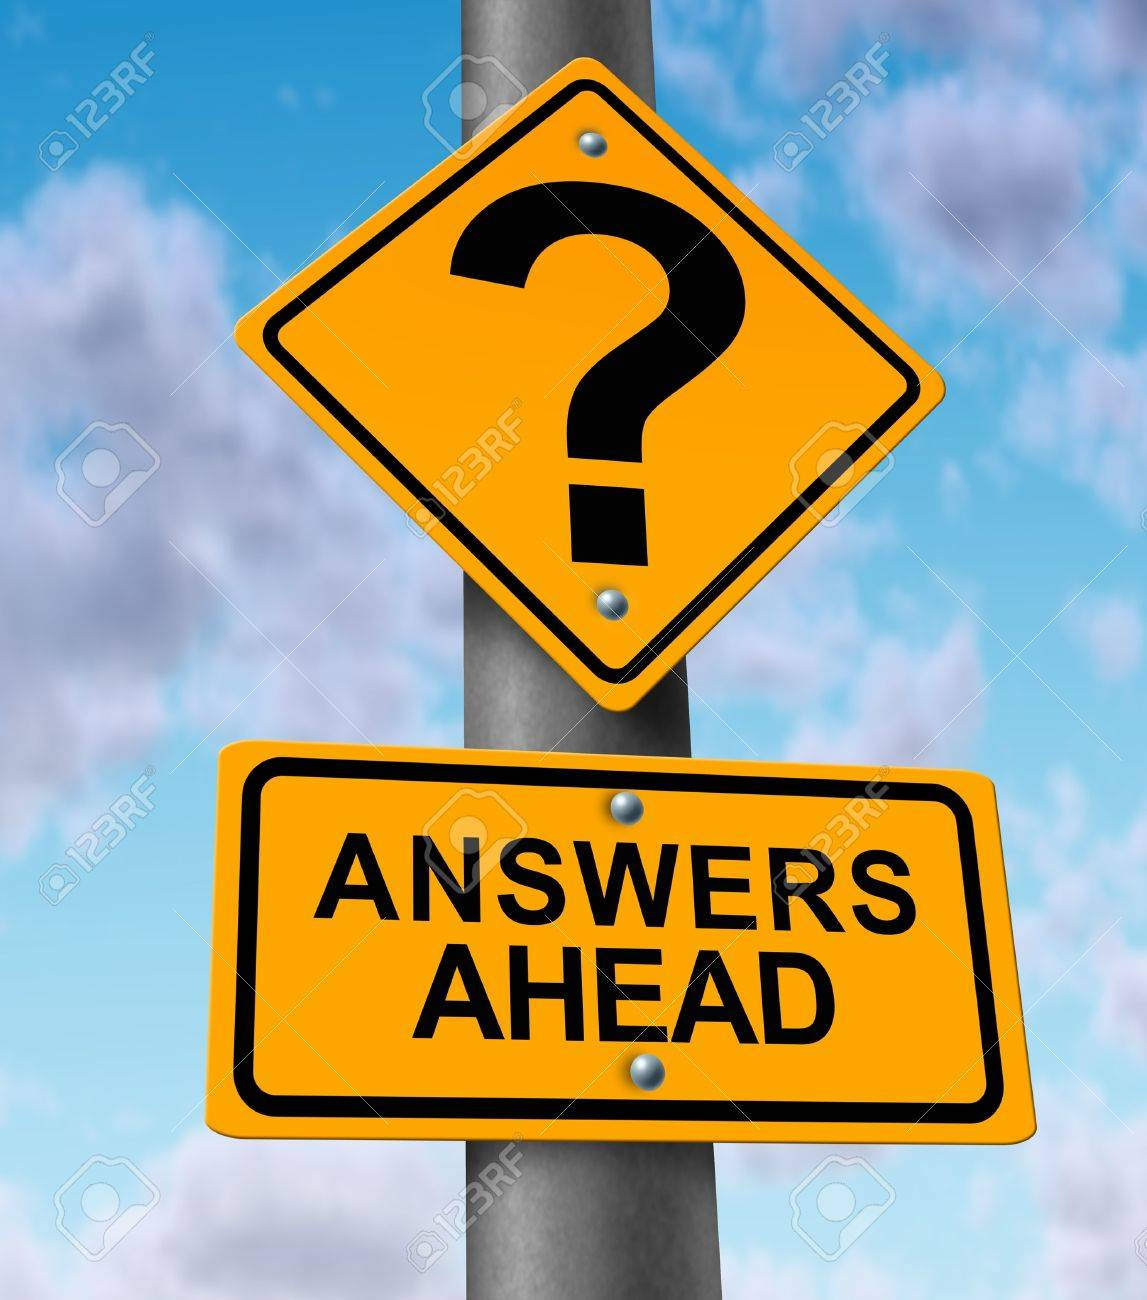 answers business stock photos images royalty answers answers business answers ahead yellow road sign on a highway metal pole announcing solutions to